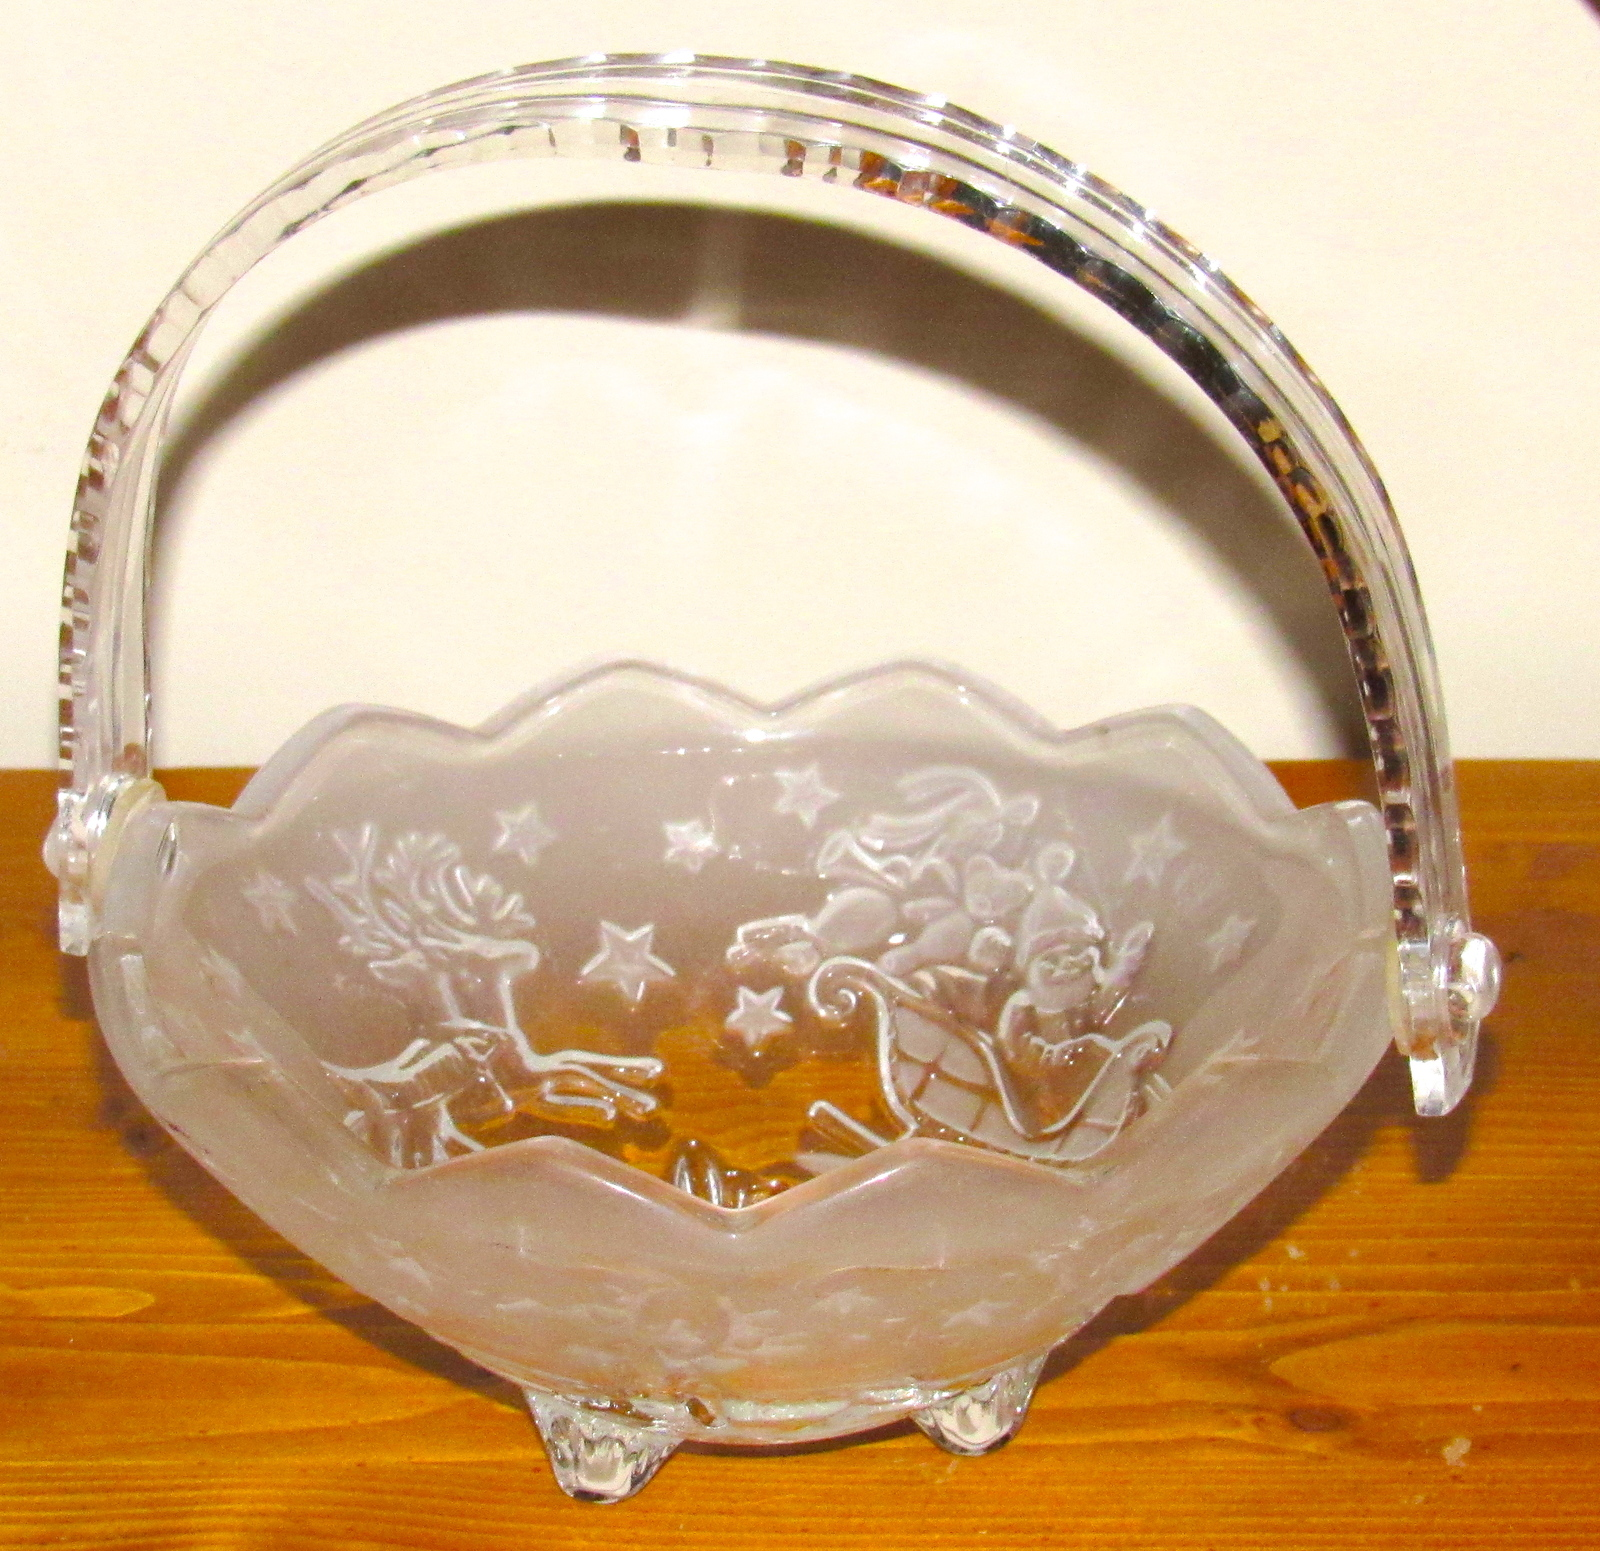 Mikasa Frosted Santa Sleigh and Reindeer Handled Basket Glass footed Candy Dish